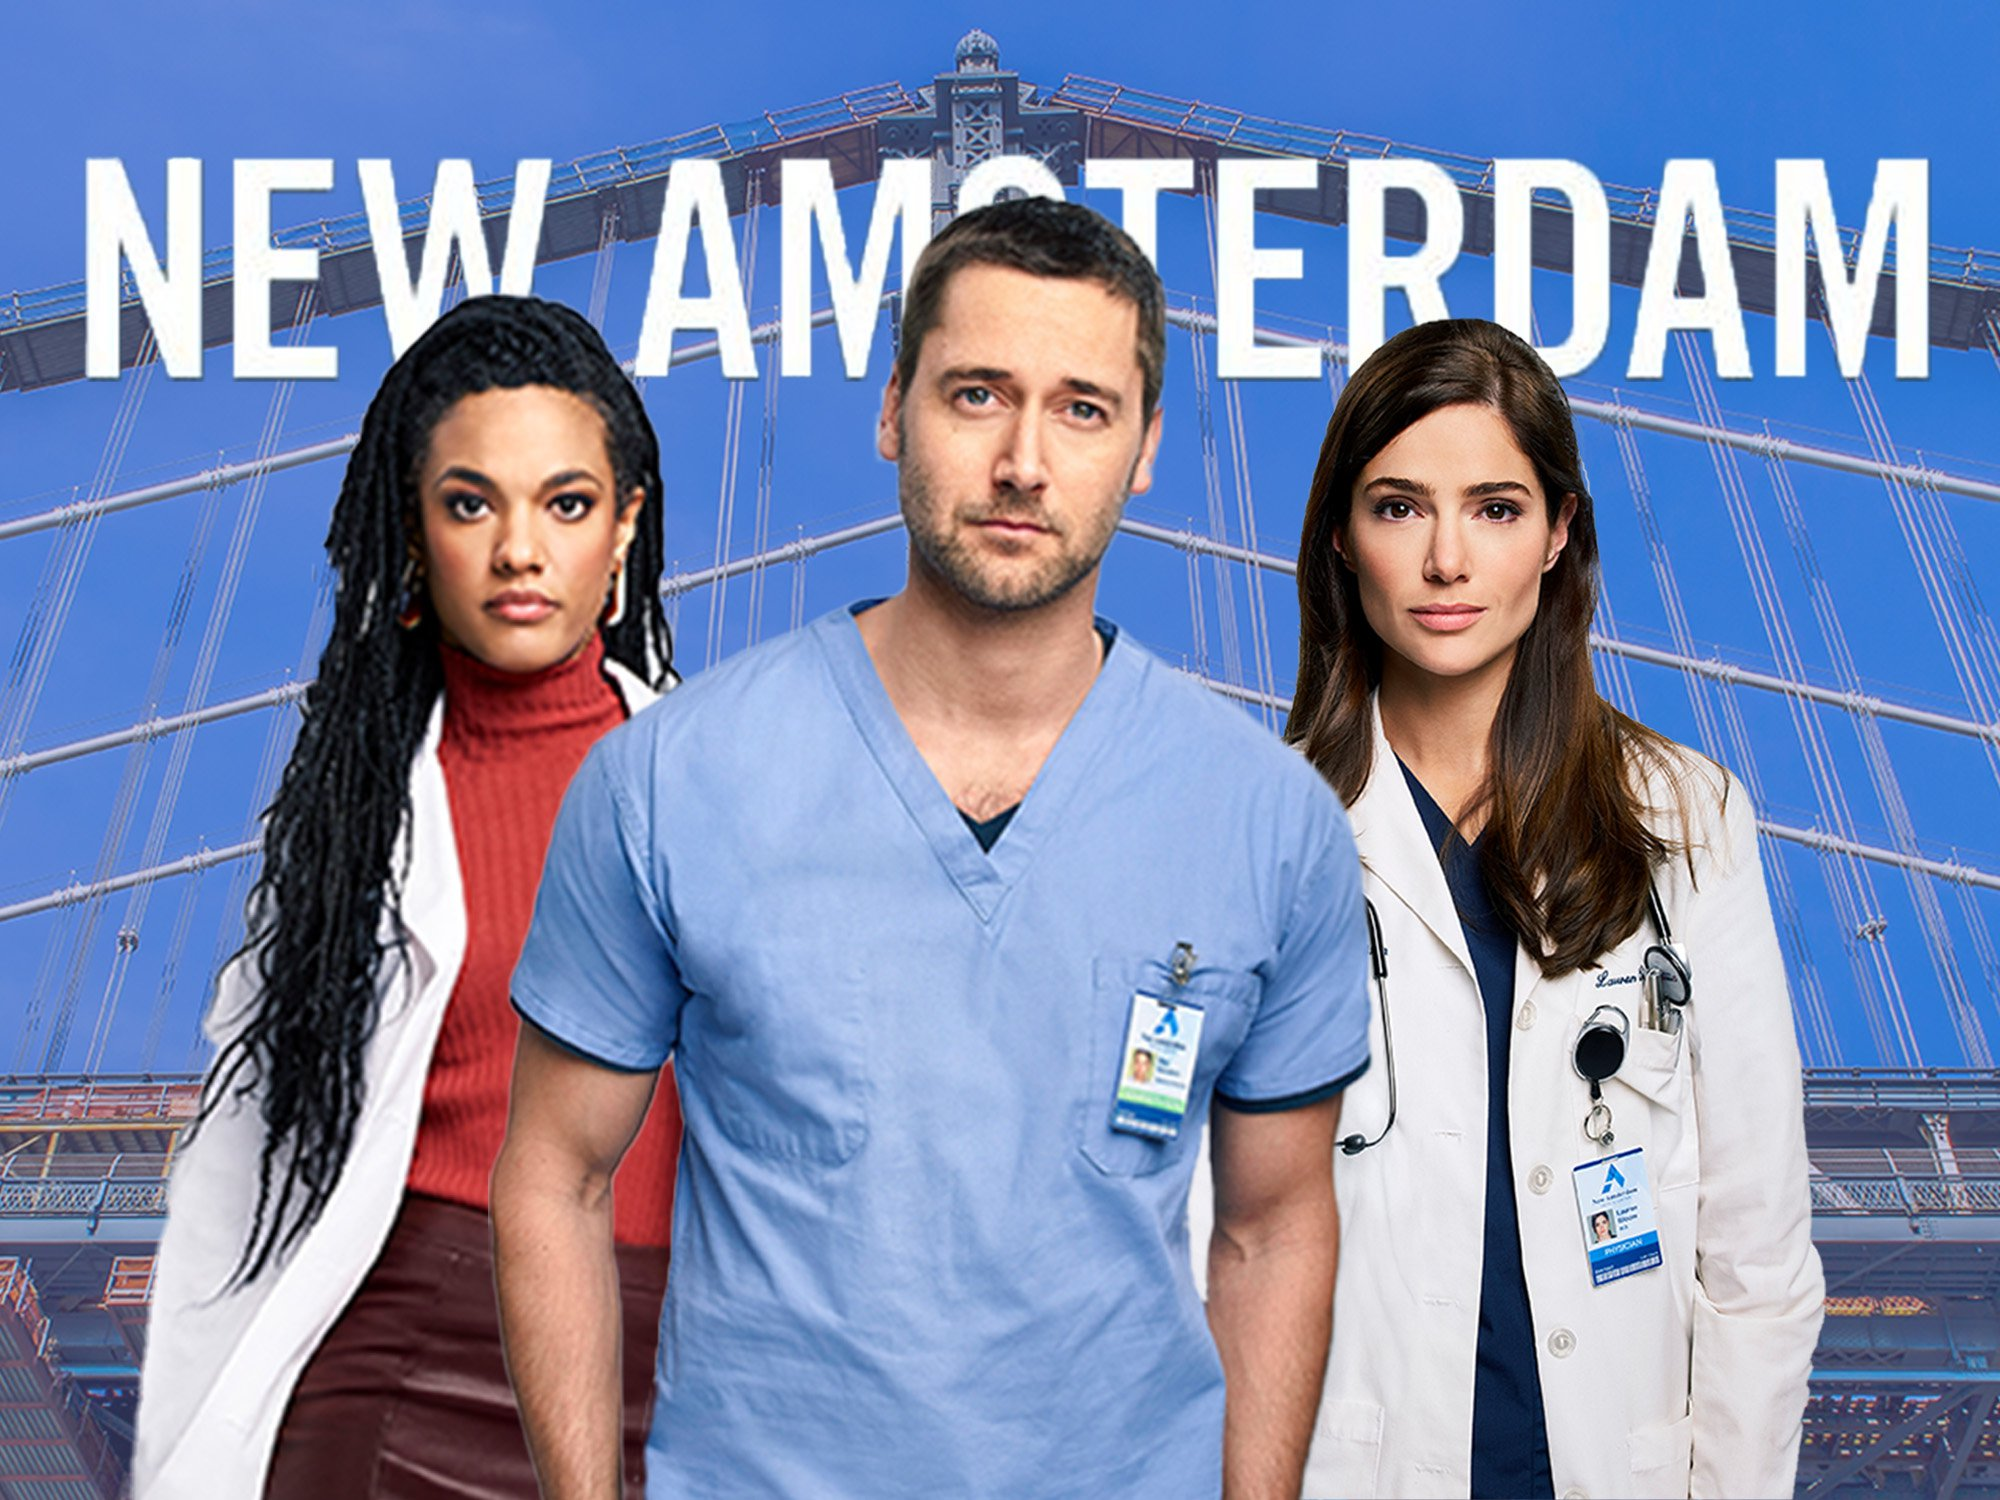 New Amsterdam Cast Reveal Behind The Scenes Secrets